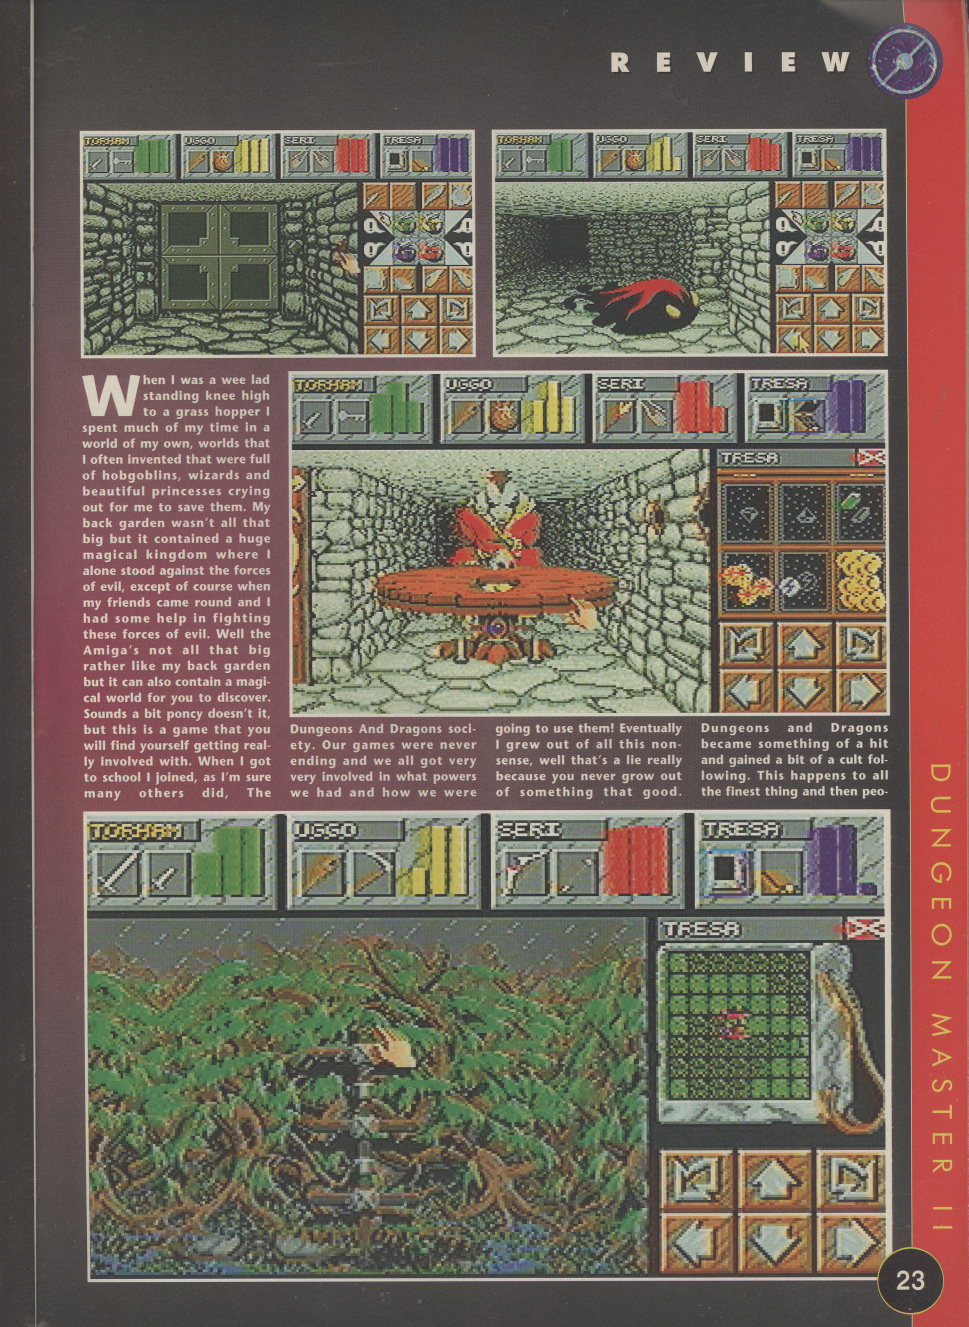 Dungeon Master II for Amiga Review published in British magazine 'The One Amiga', Issue #85 November 1995, Page 23